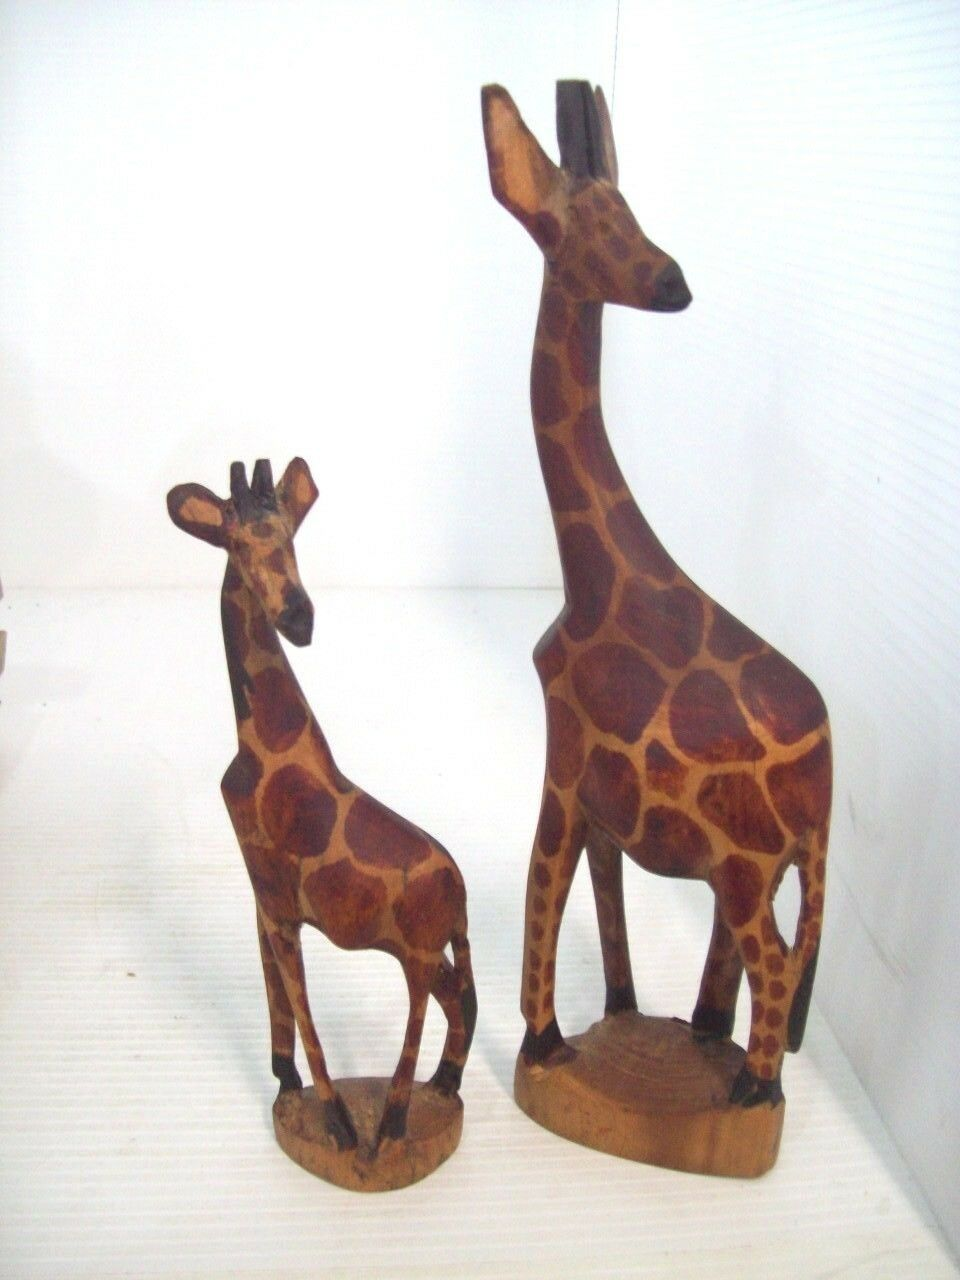 TWO Wooden Hand Carved GIRAFFE 12 & 8 IN Tall Handmade Carving Kenya Africa